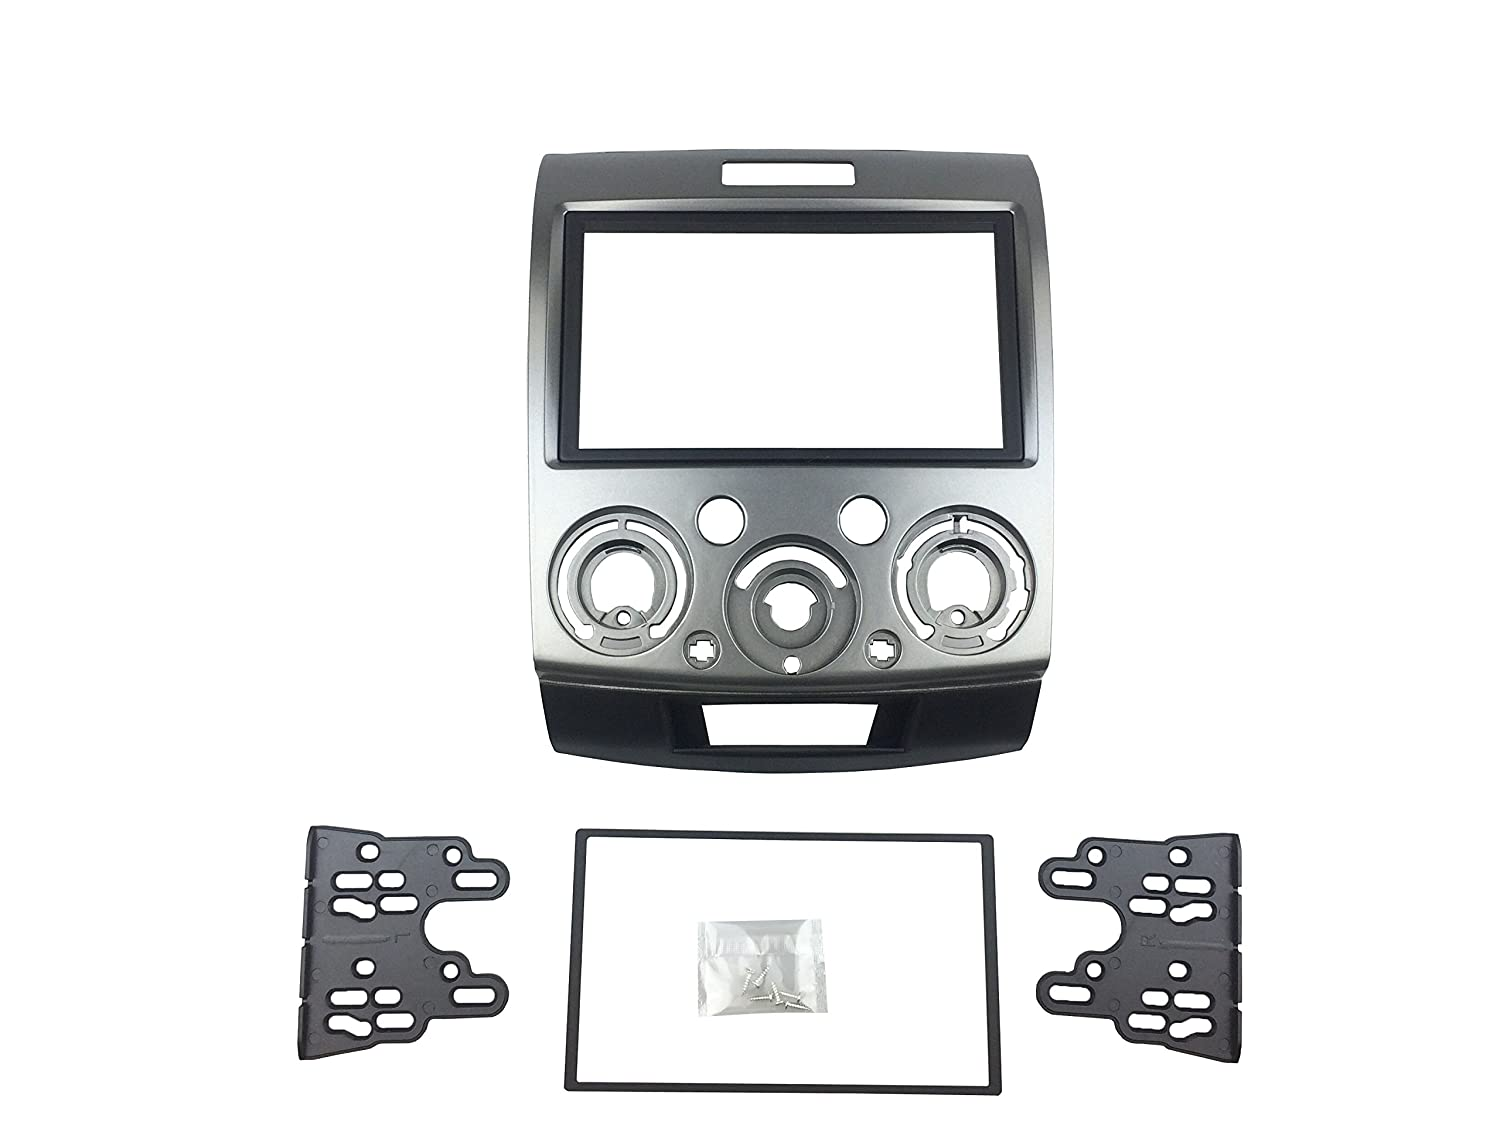 DKMUS Double Din Radio Stereo Dash Install Mount Trim Kit for Mazda Bt-50 2006 up Ford Ranger 2006-2010 Everest 2006 up Fascia Include in 173*98mm and 178*102mm Opening Frames DKM International